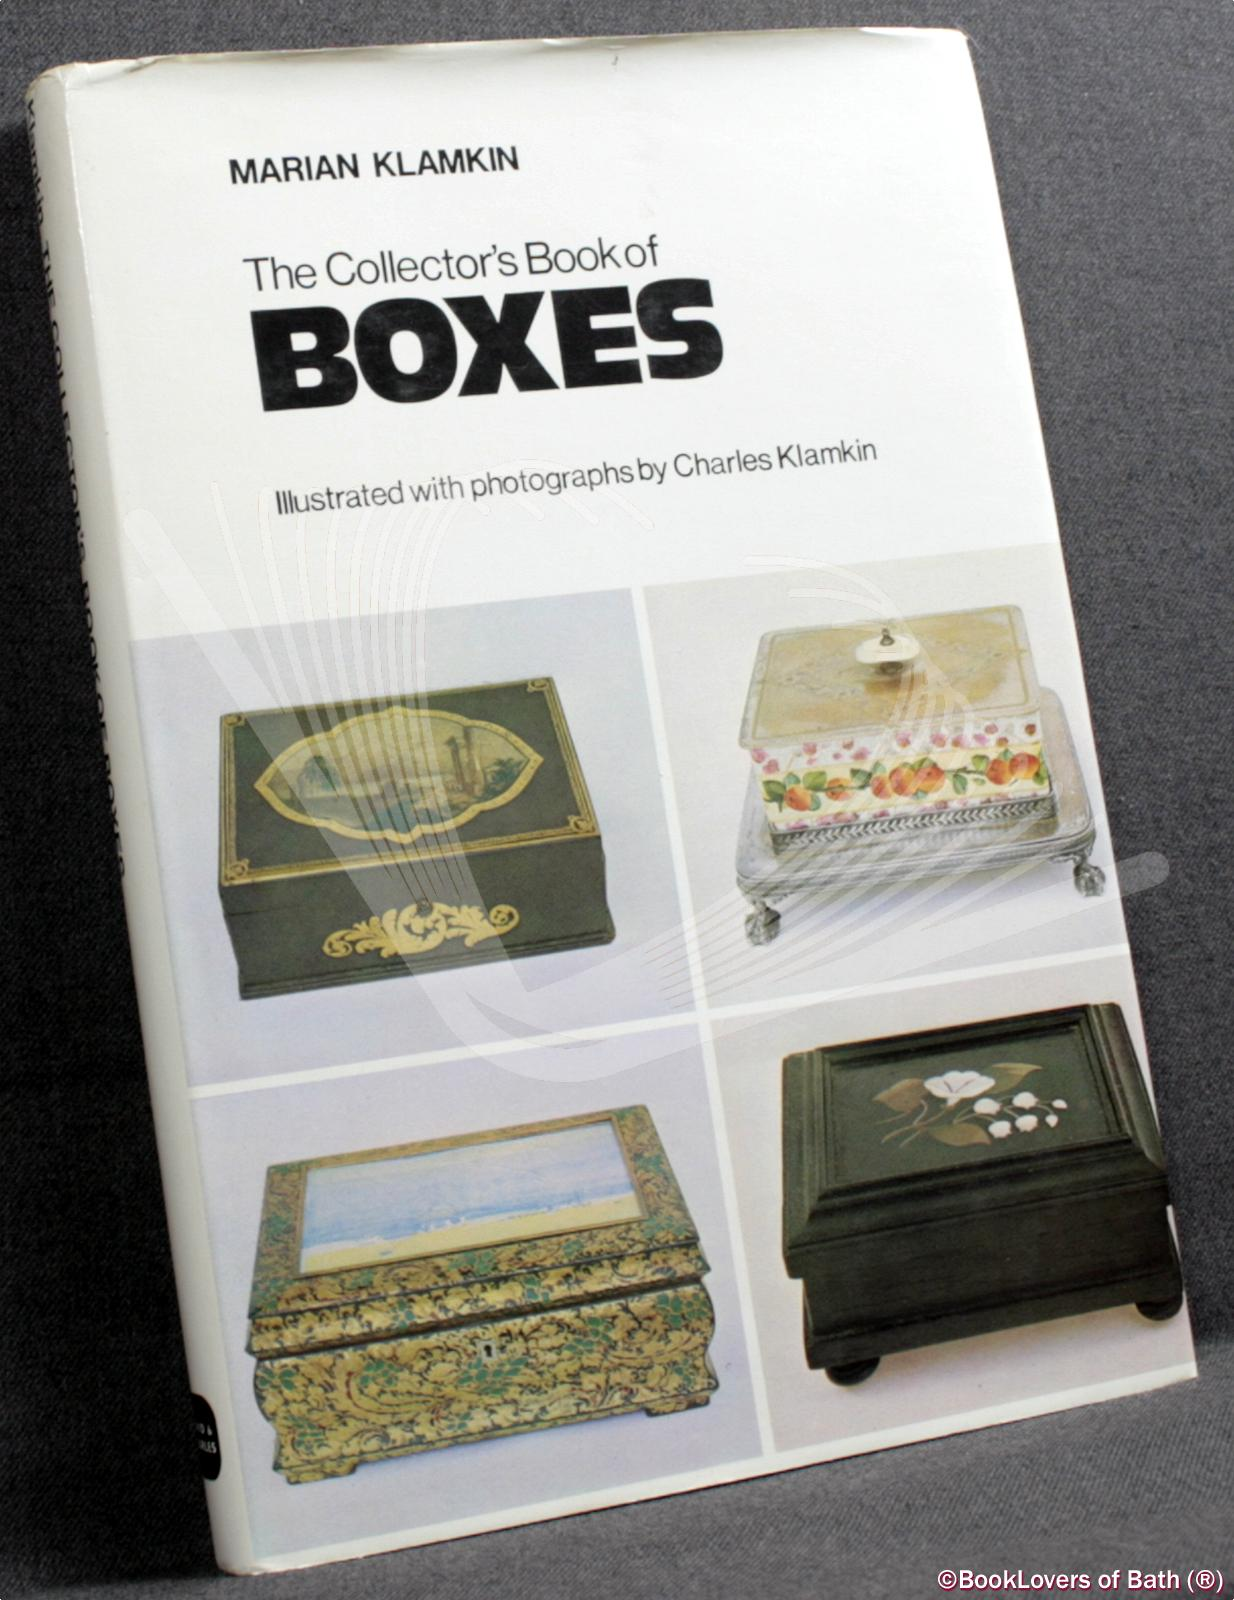 The Collector's Book Of Boxes - Marian Klamkin